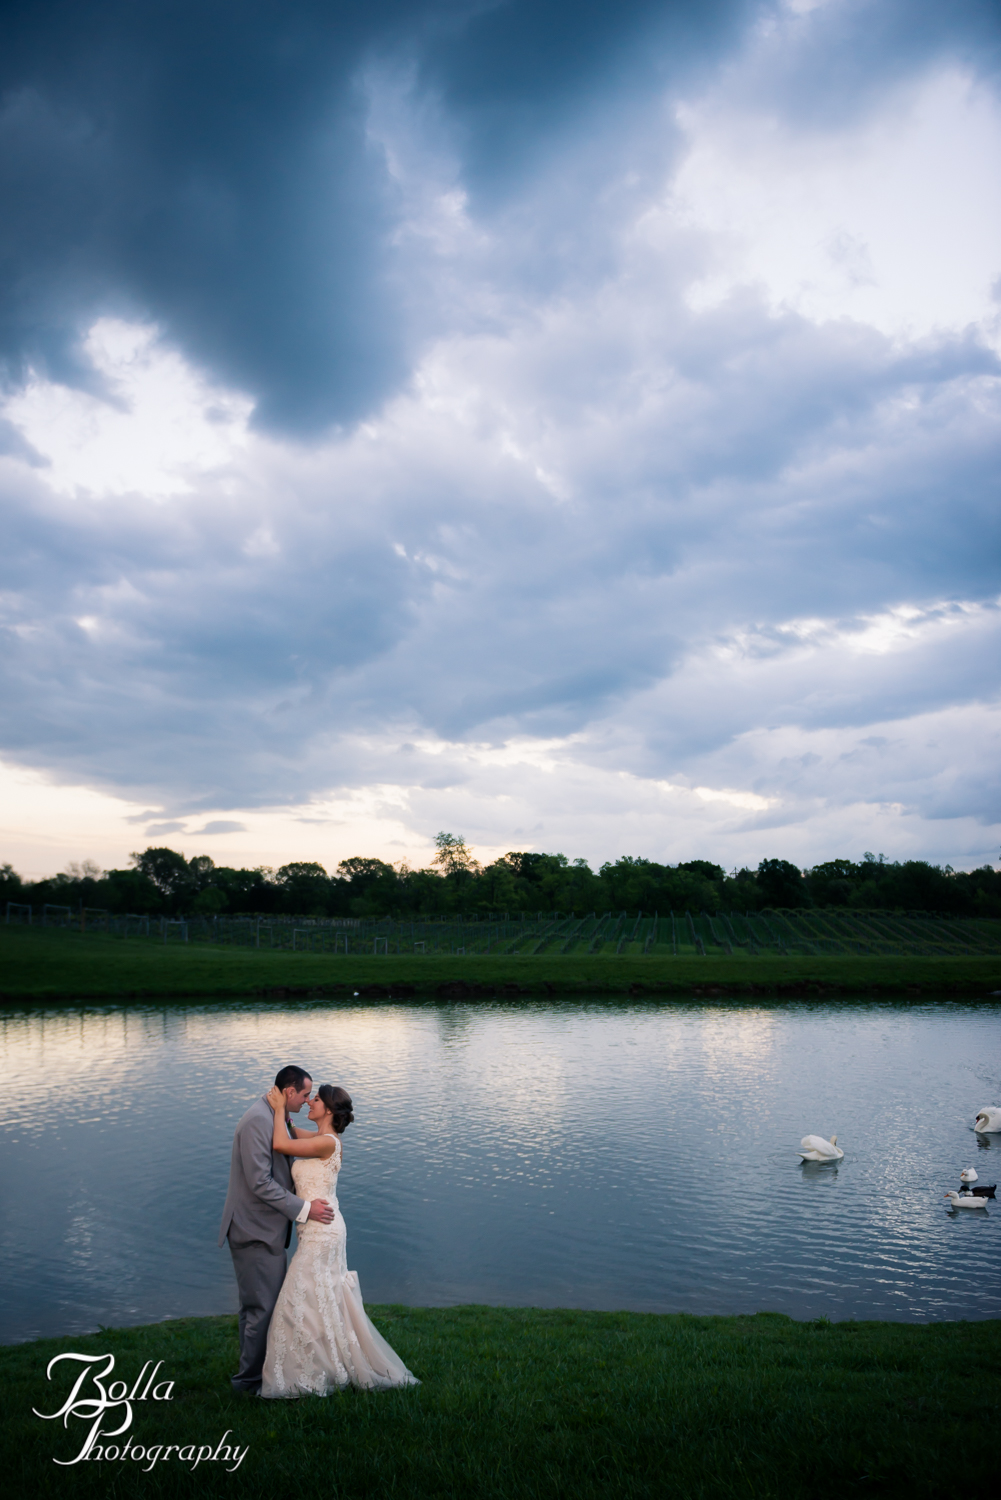 Bolla_Photography_St_Louis_wedding_photographer_Villa_Marie_Winery-0387.jpg